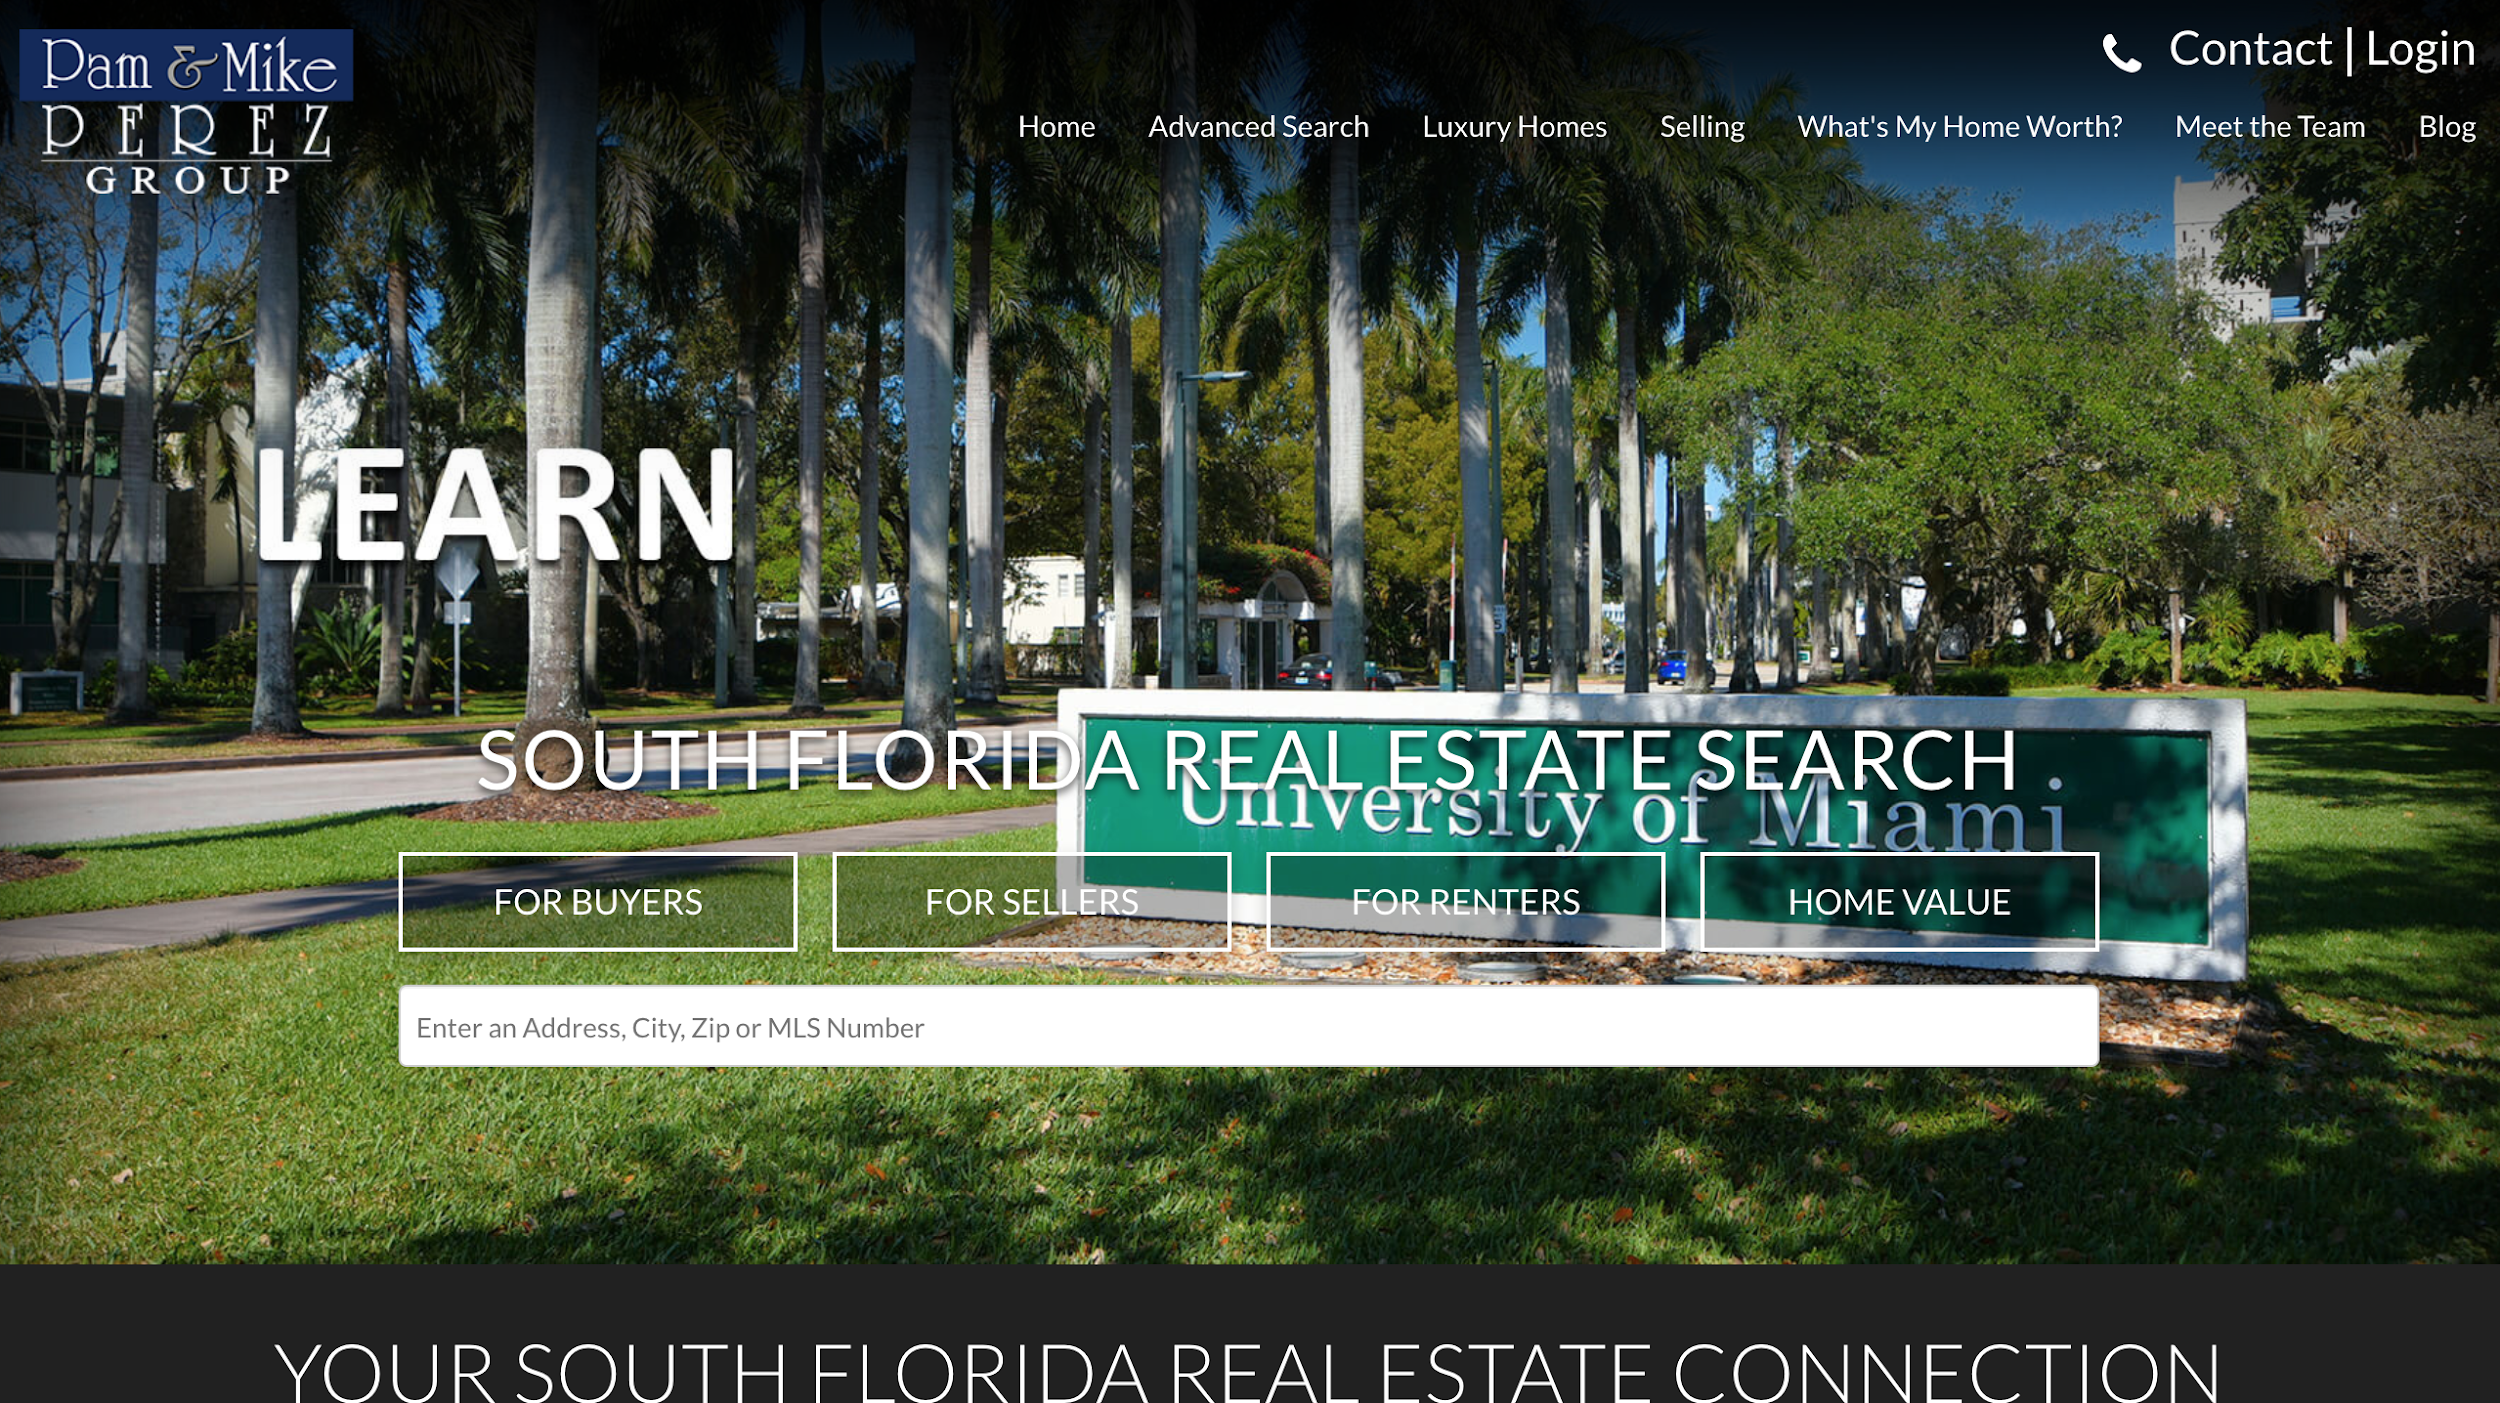 Pam and Mike Perez Group - real estate landing pages